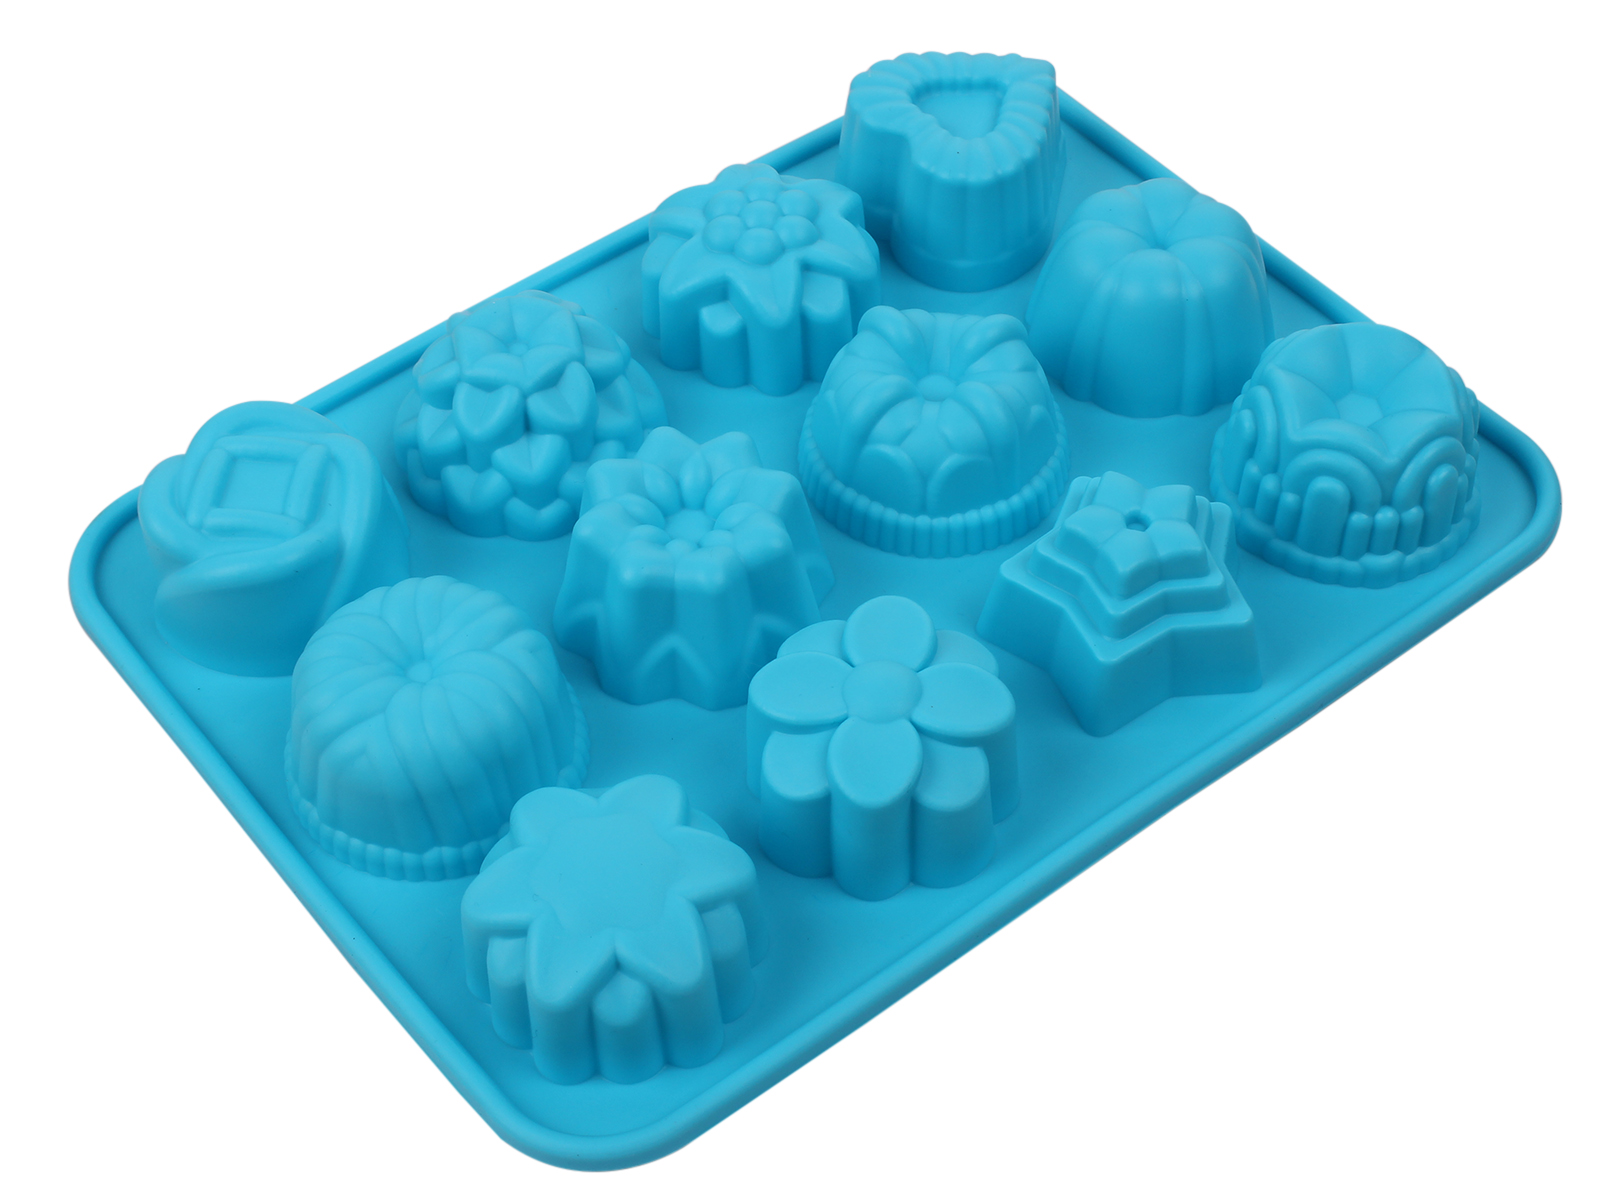 Cake Decorating Equipment Usa : USA DIY Silicone Mold Fondant Cake Chocolate Decorating ...